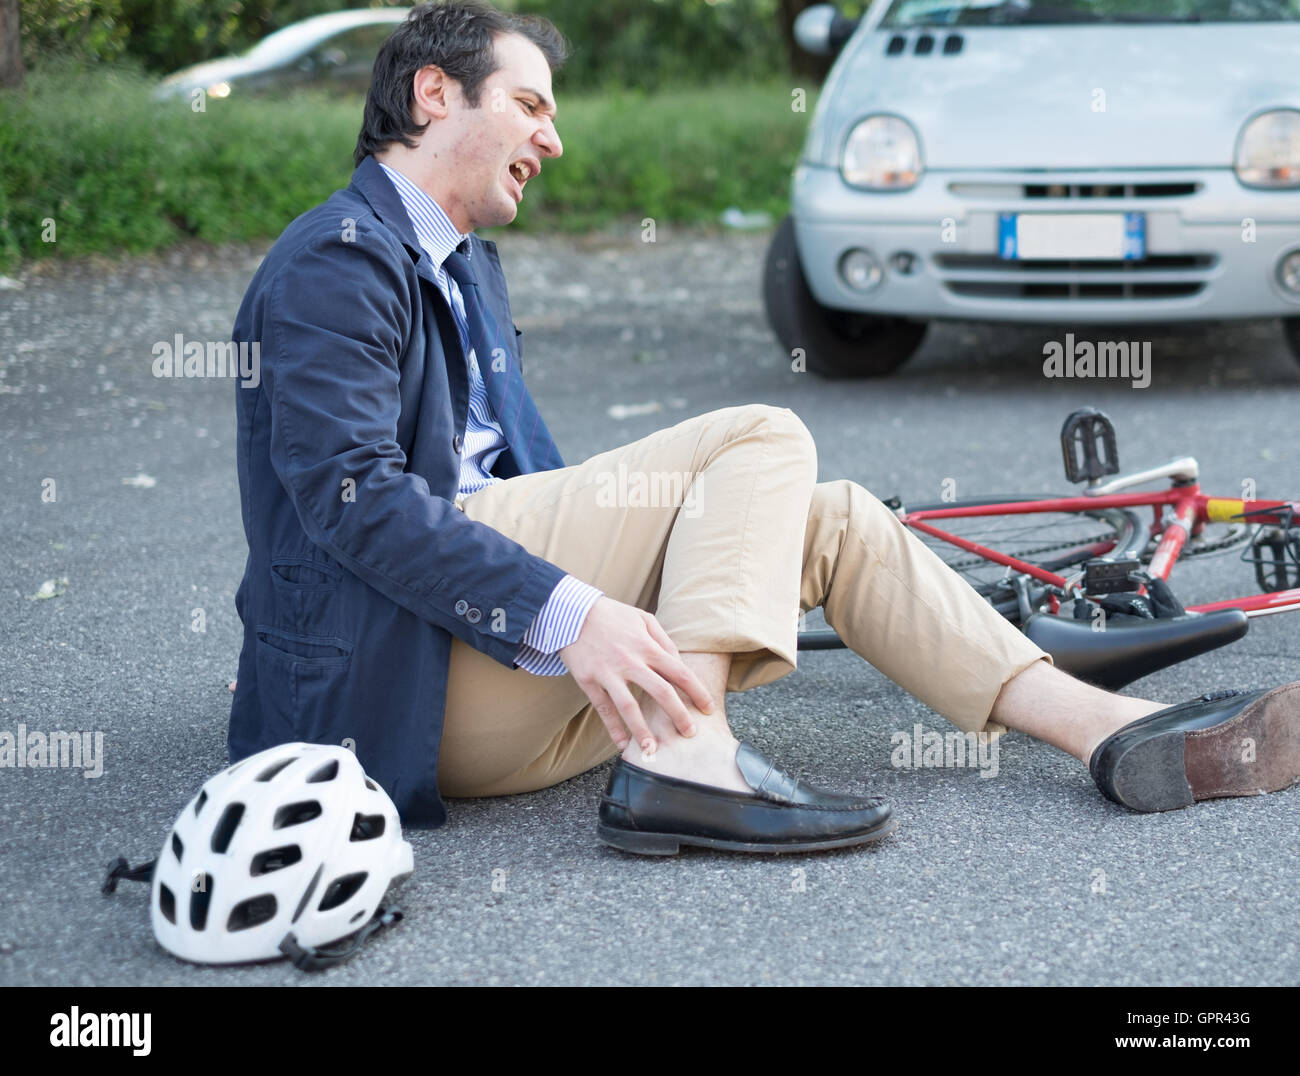 aching man after bicycle accident on the asphalt - Stock Image